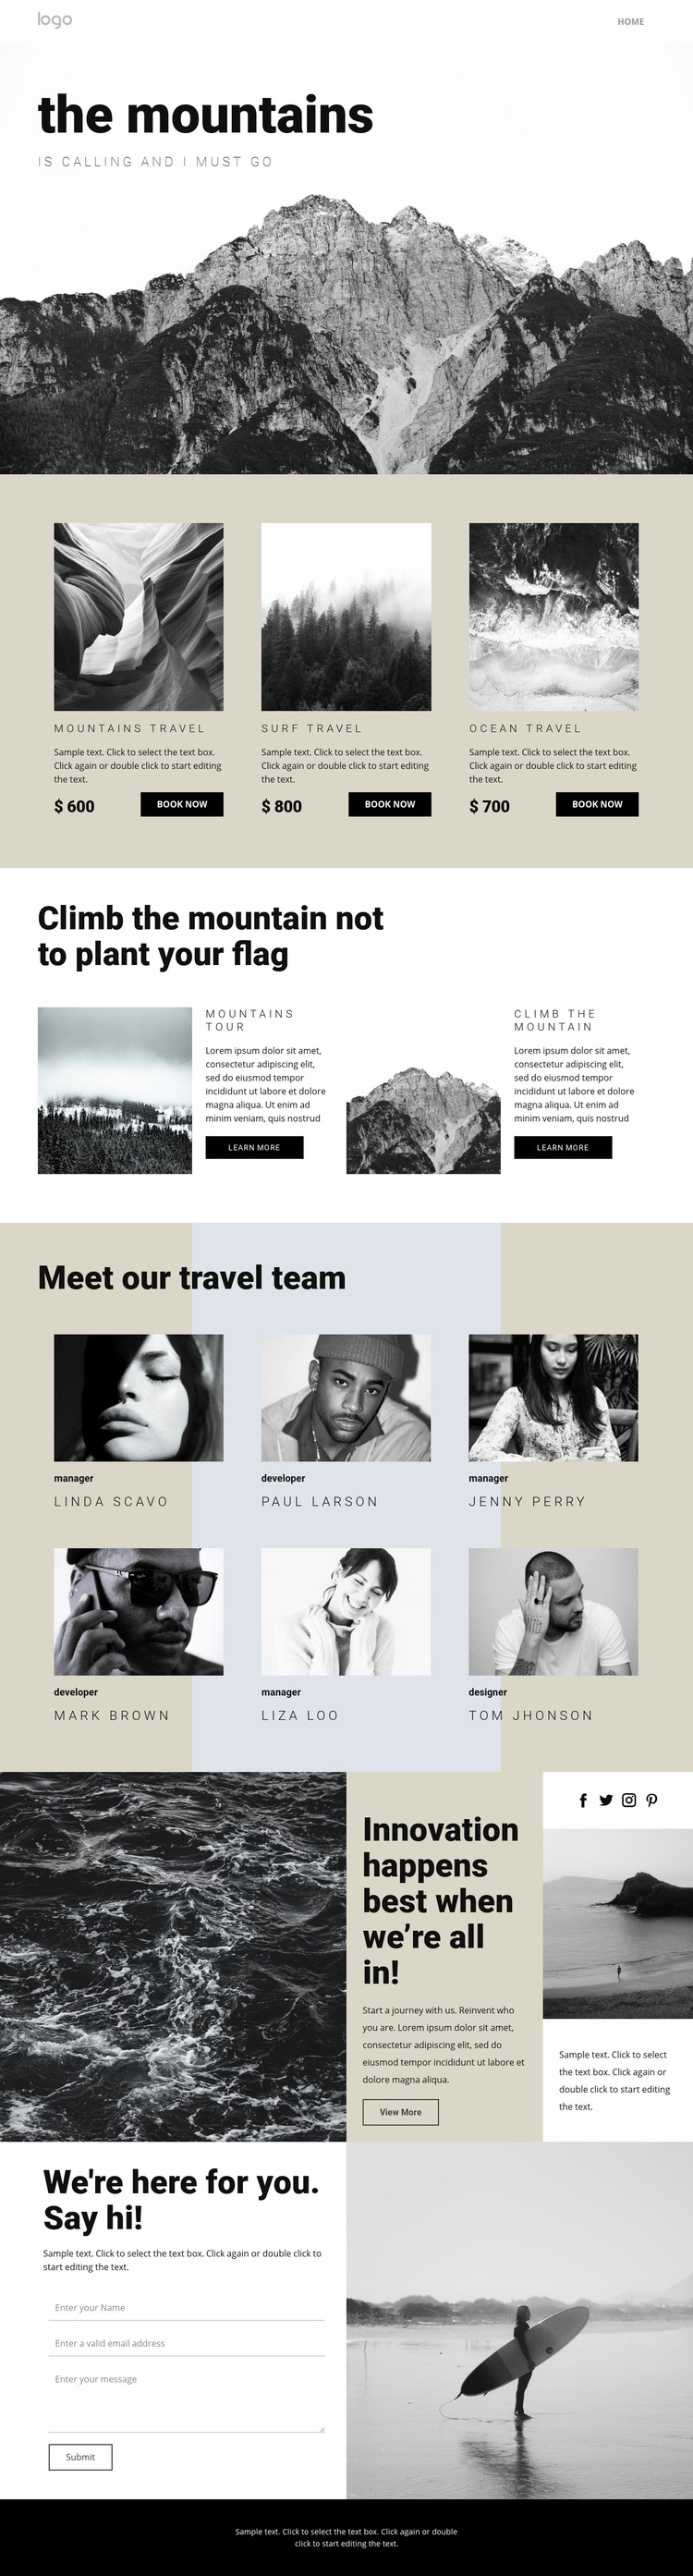 Agency for people who travel Web Page Design